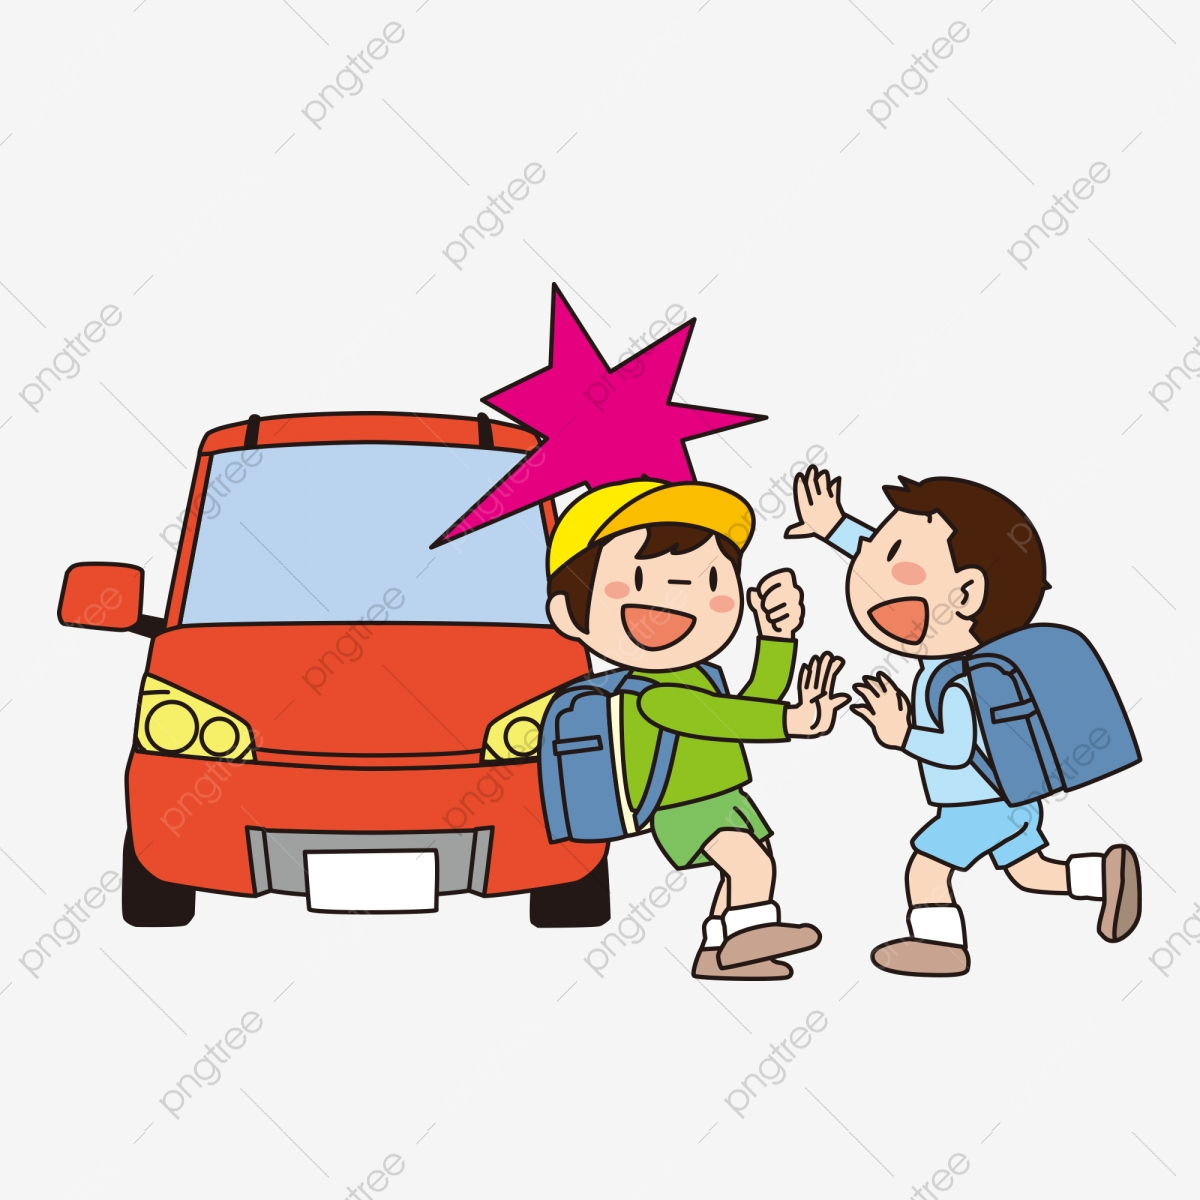 Child Safety Education Cartoon Hand Drawn Childrens Unsafe Behavior Play On The Road Uncivilized Life Safety Child Safety Education Poster Safety Png And Vector With Transparent Background For Free Download